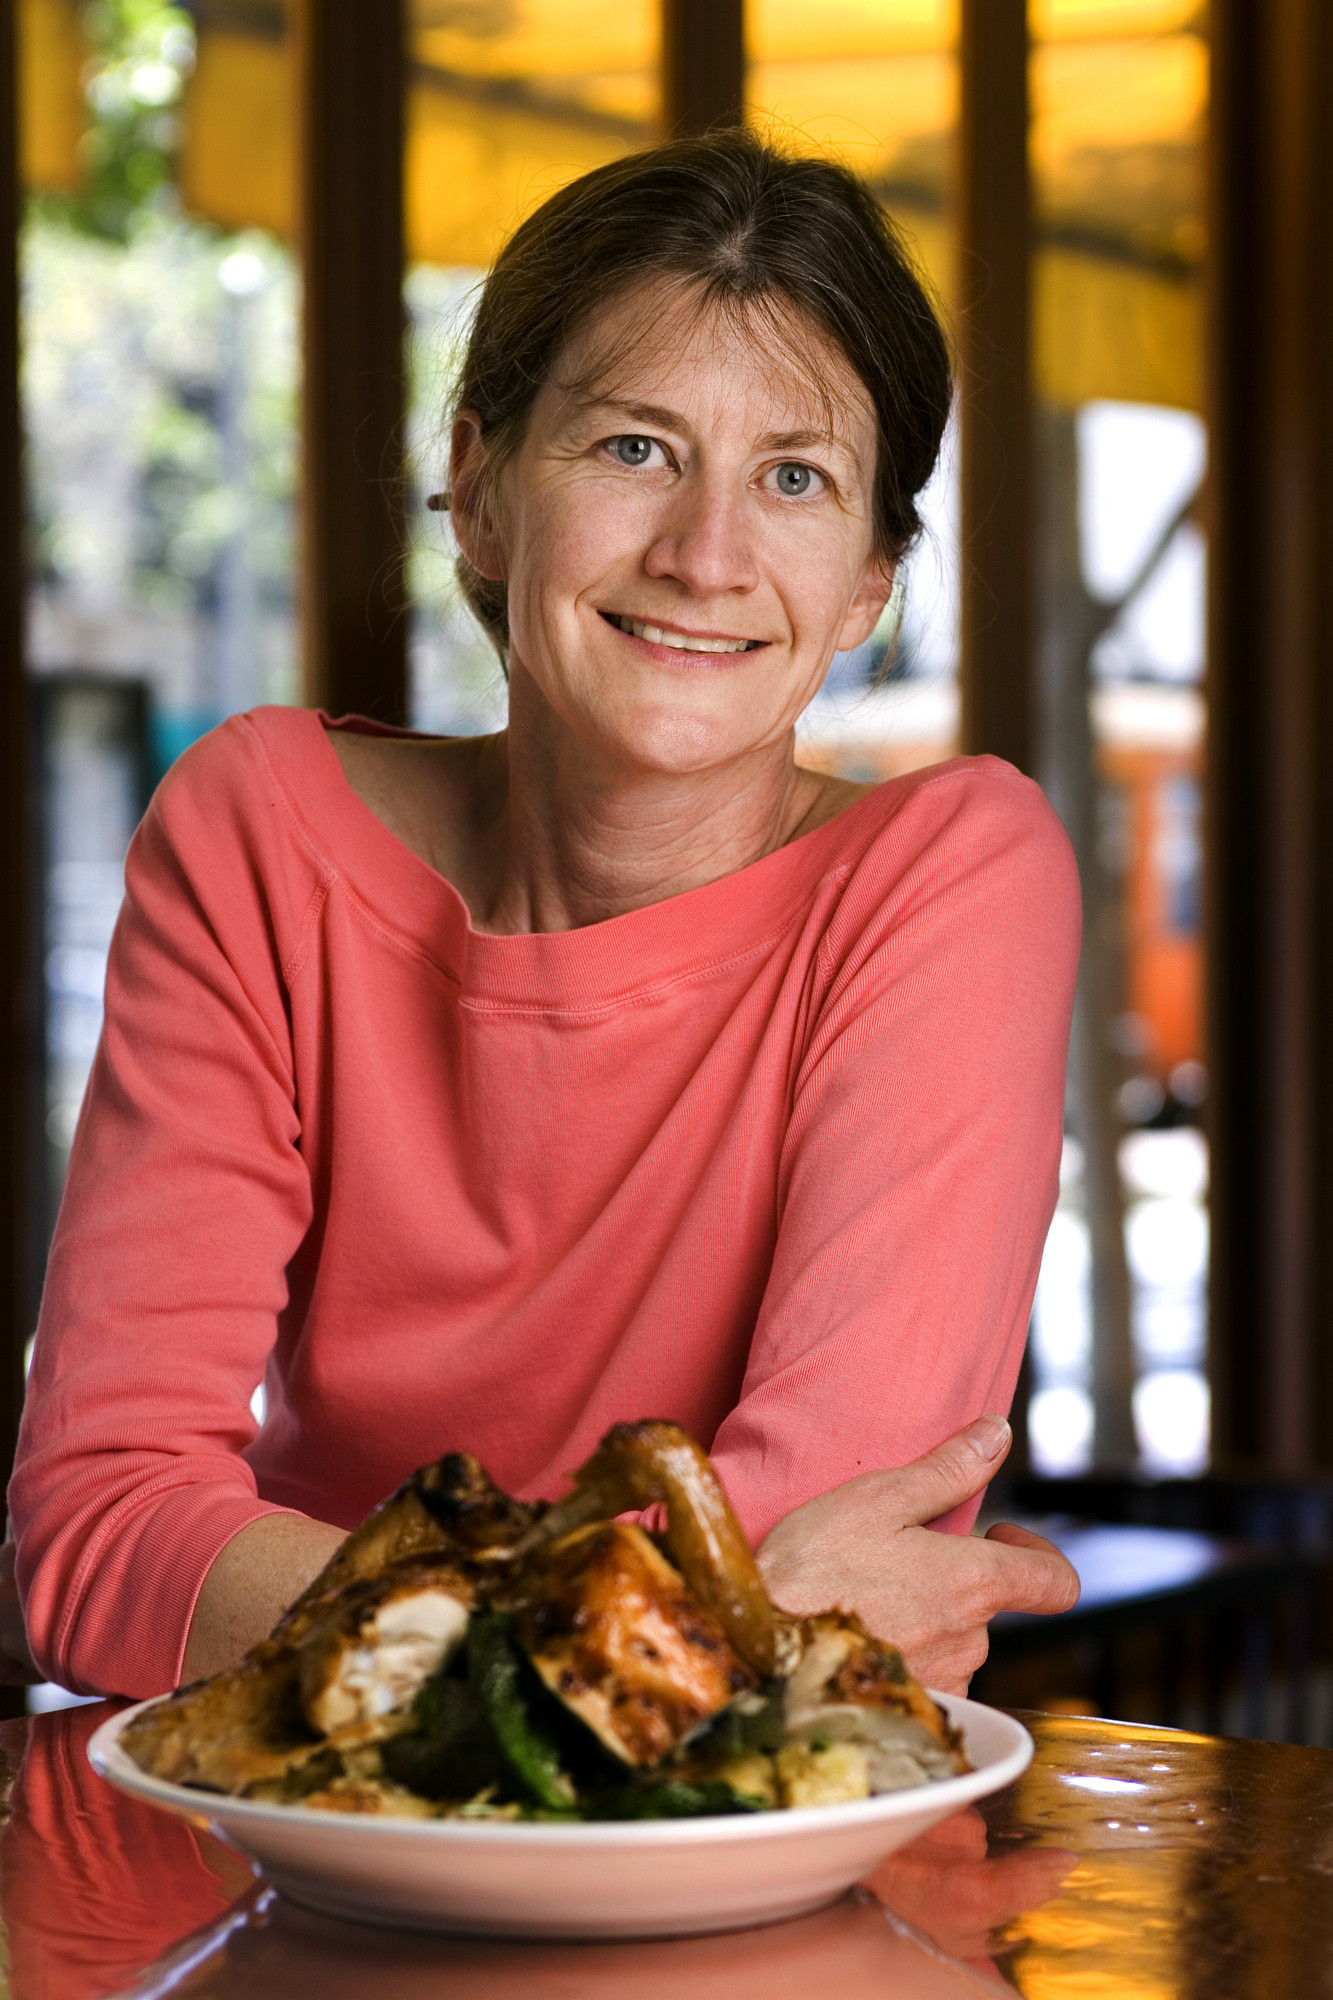 Zuni Cafe S Judy Rodgers Dies At 57 La Times